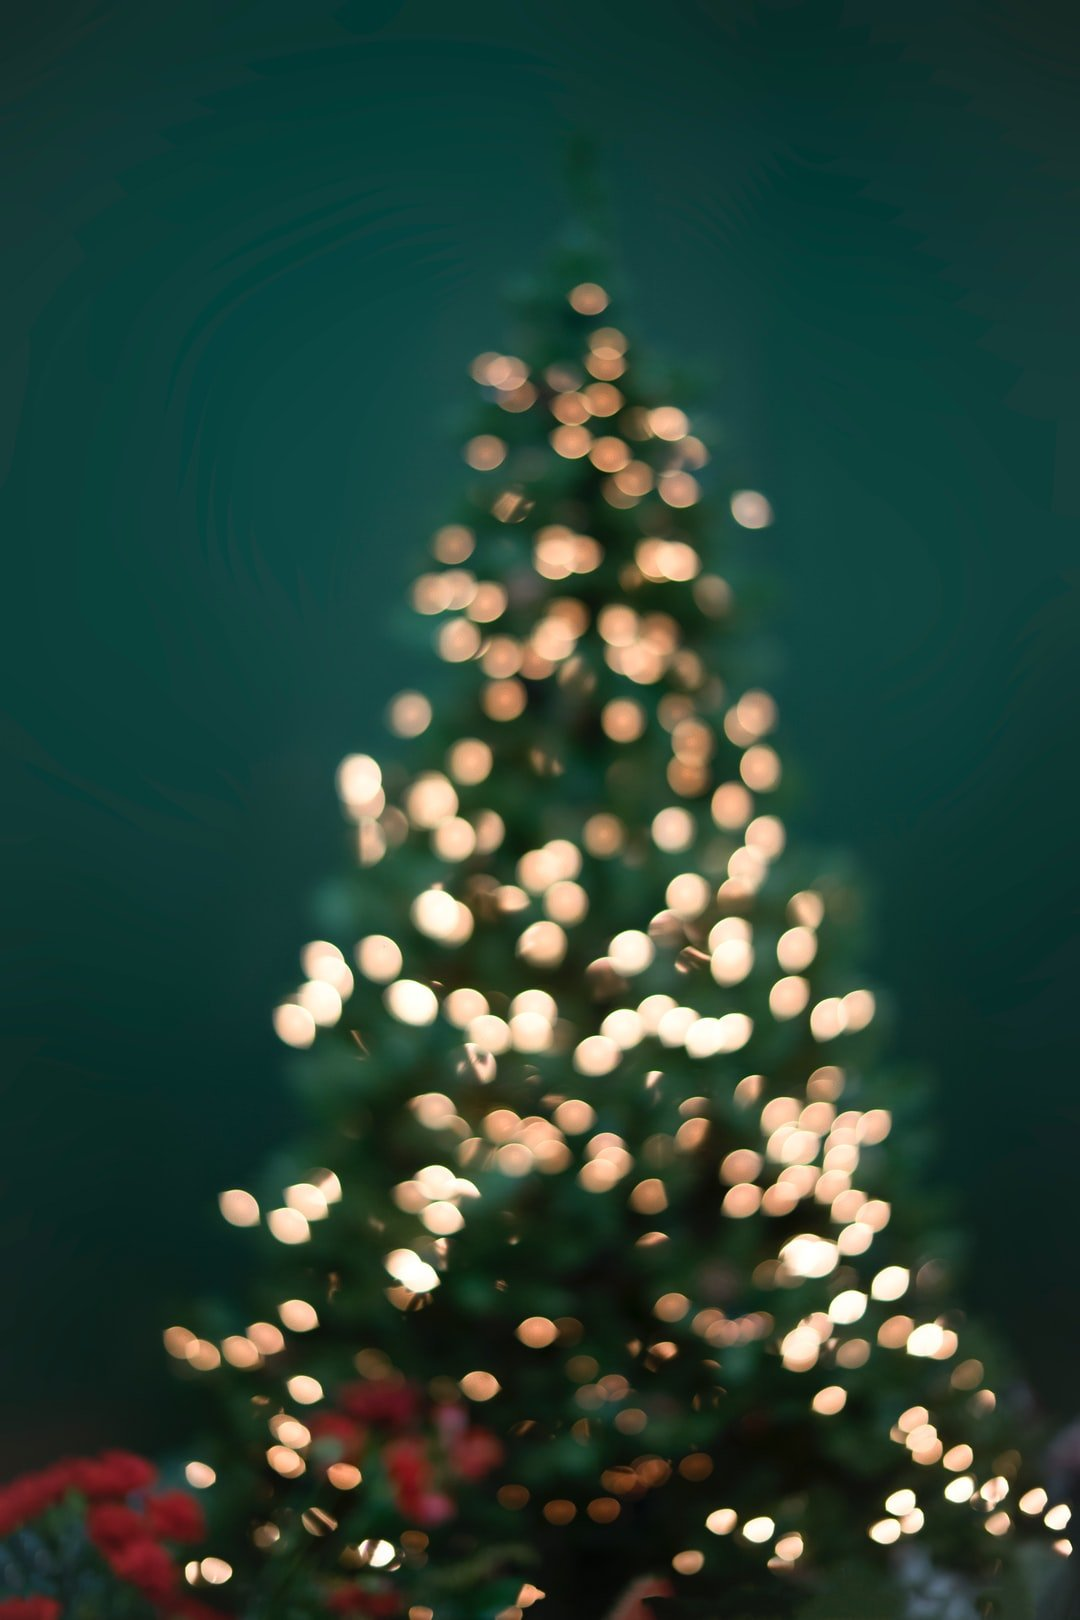 900 Christmas Tree Images Download HD Pictures Photos on Unsplash 1080x1620